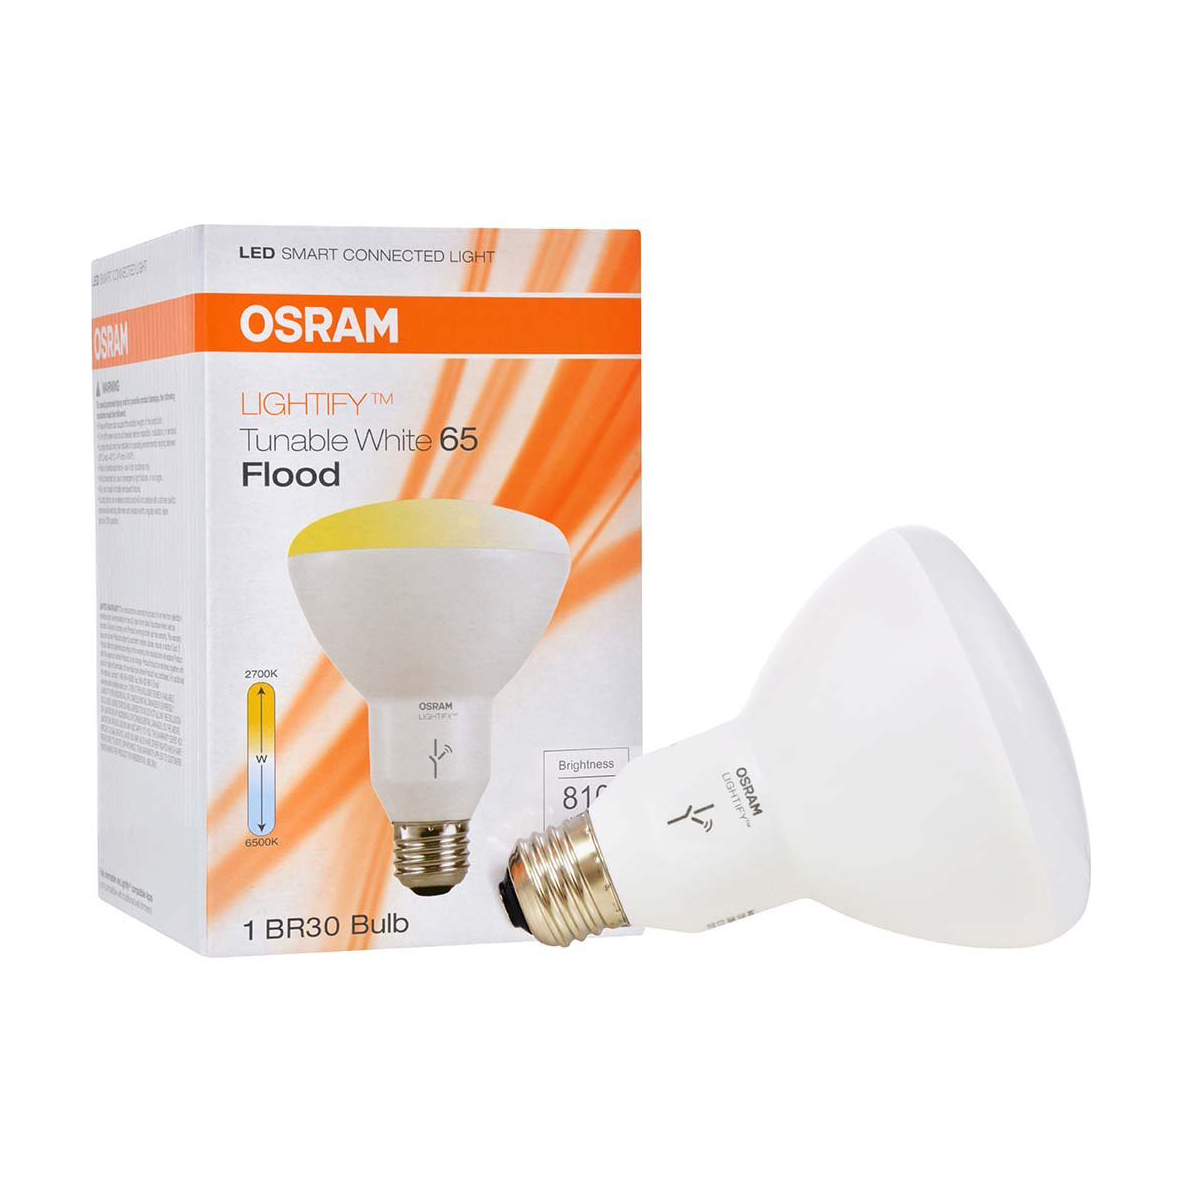 sylvania osram lightify smart home 65w br30 white led. Black Bedroom Furniture Sets. Home Design Ideas